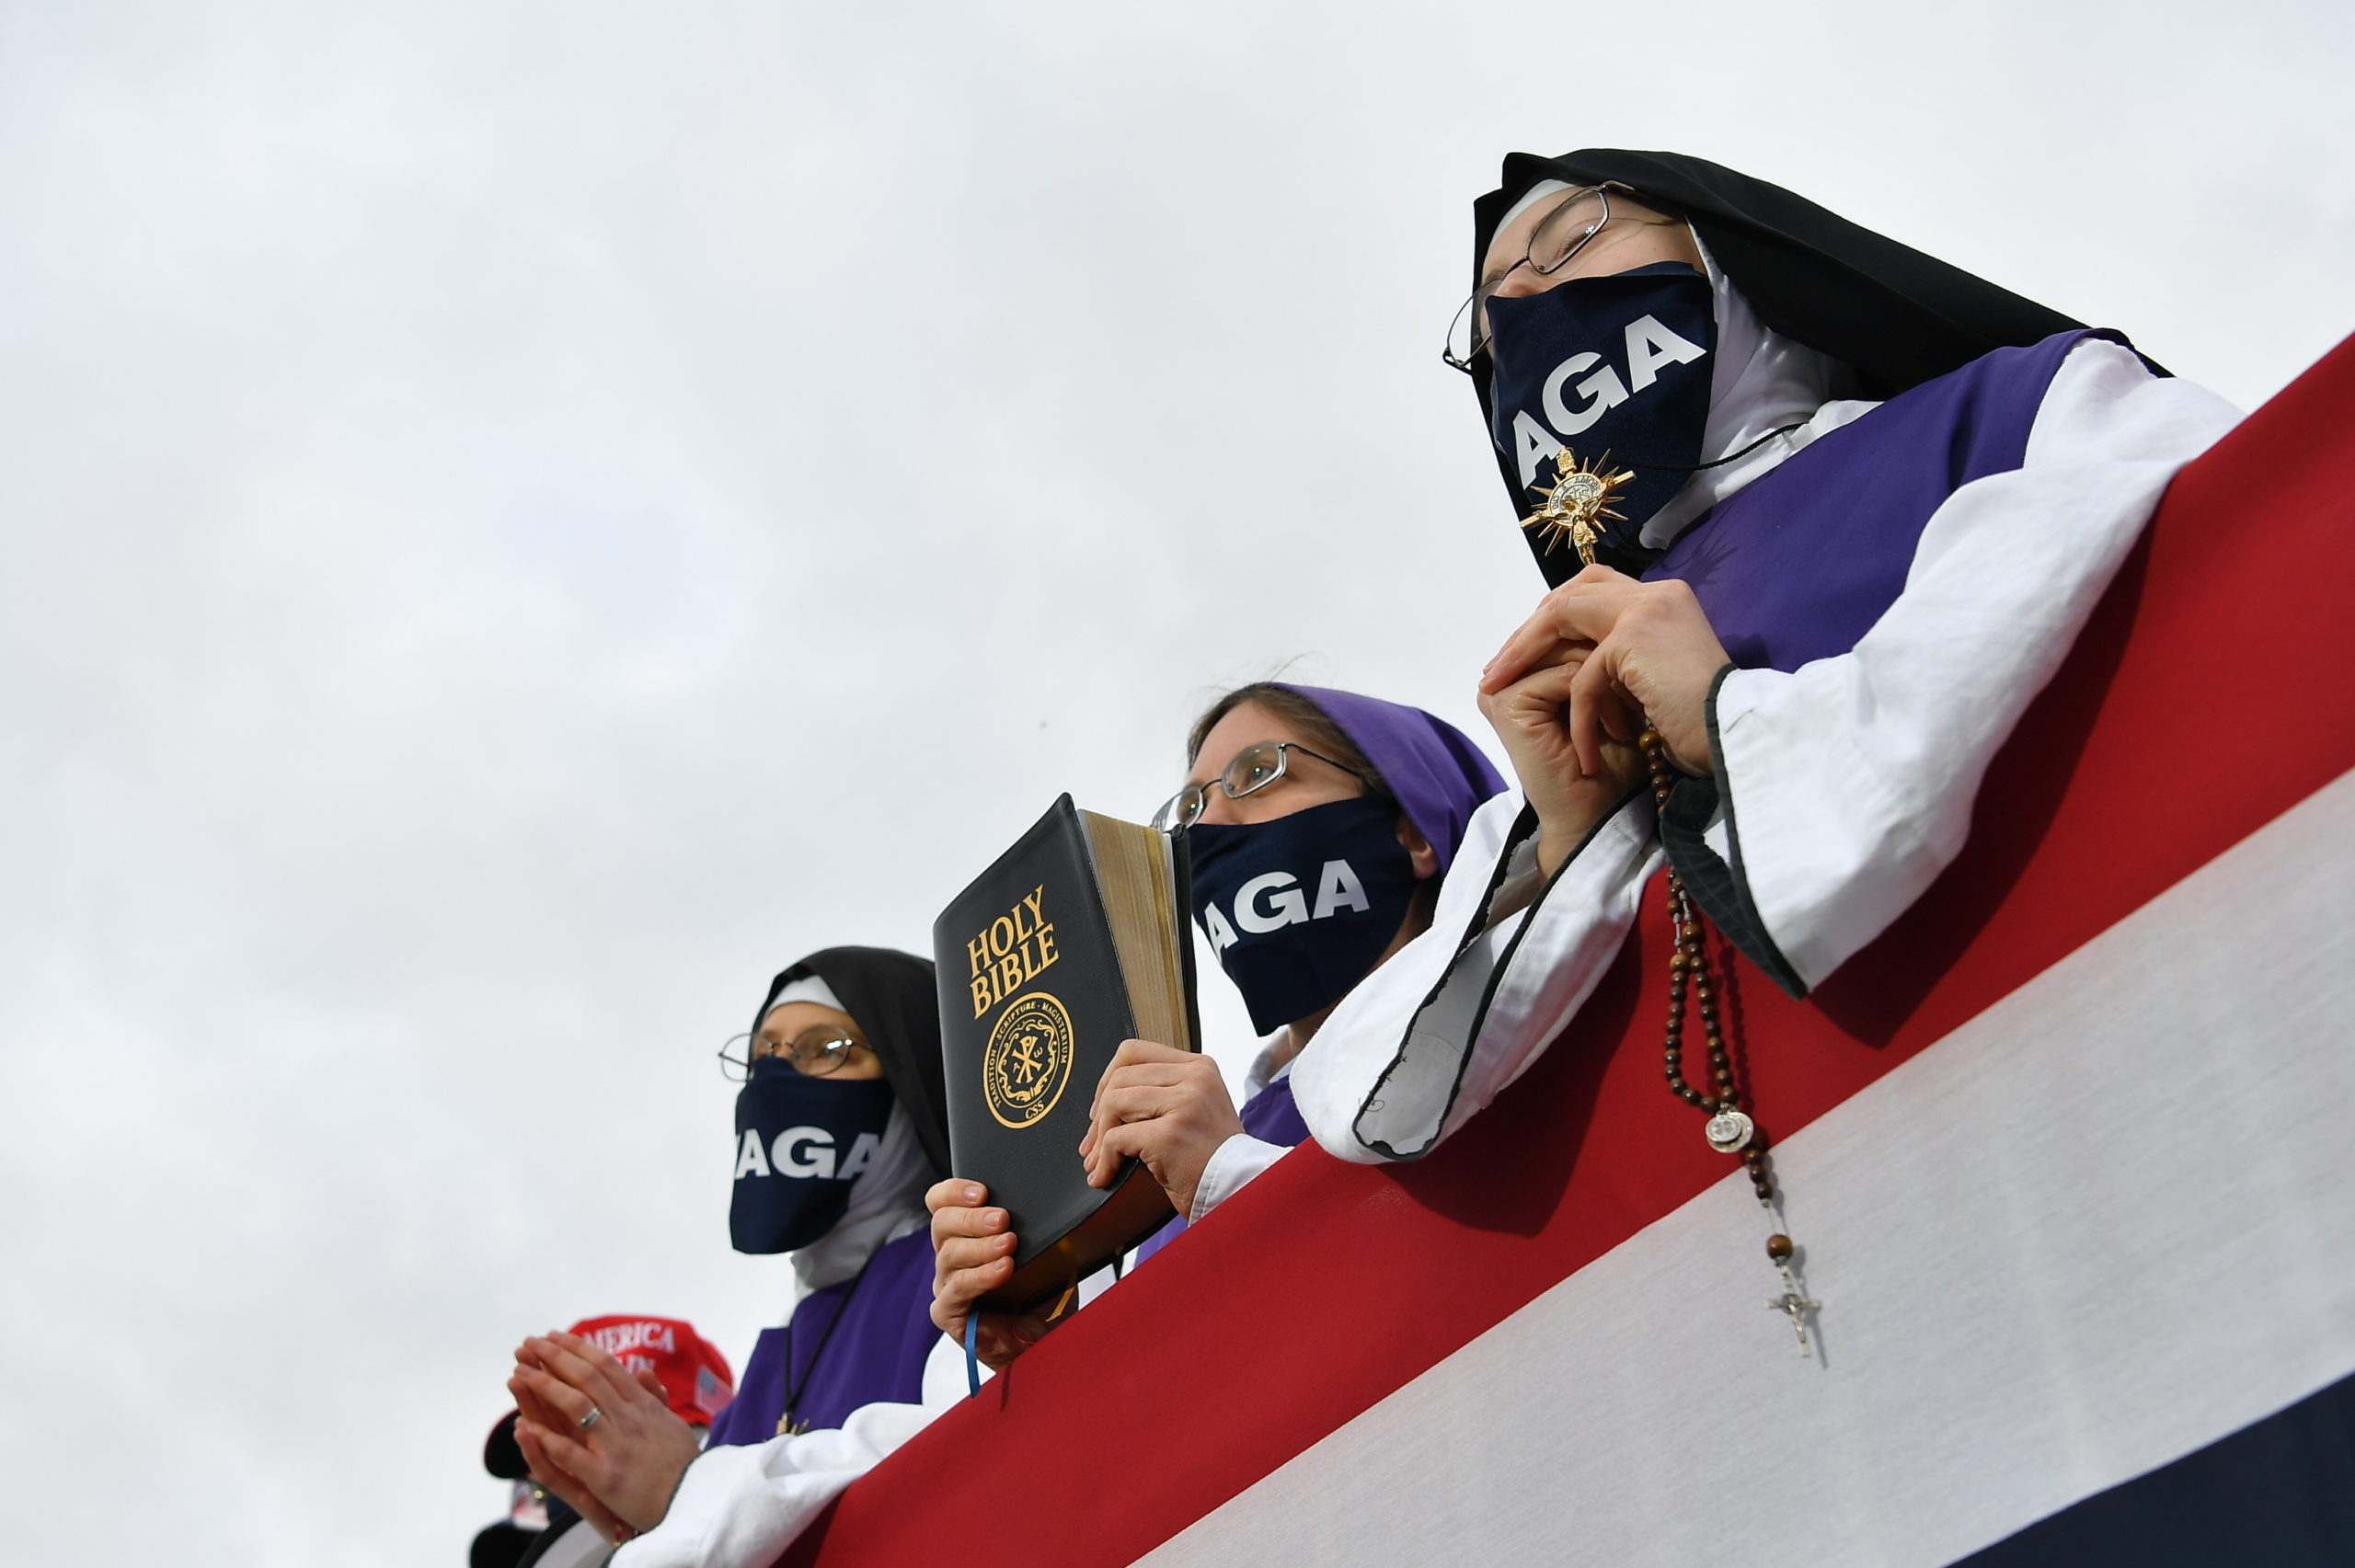 Nuns wearing masks displaying Trump's MAGA slogan listen as US President Donald Trump speaks during a campaign rally at Pickaway Agriculture and Event Center in Circleville, Ohio on October 24, 2020.  (MANDEL NGAN/AFP via Getty Images)